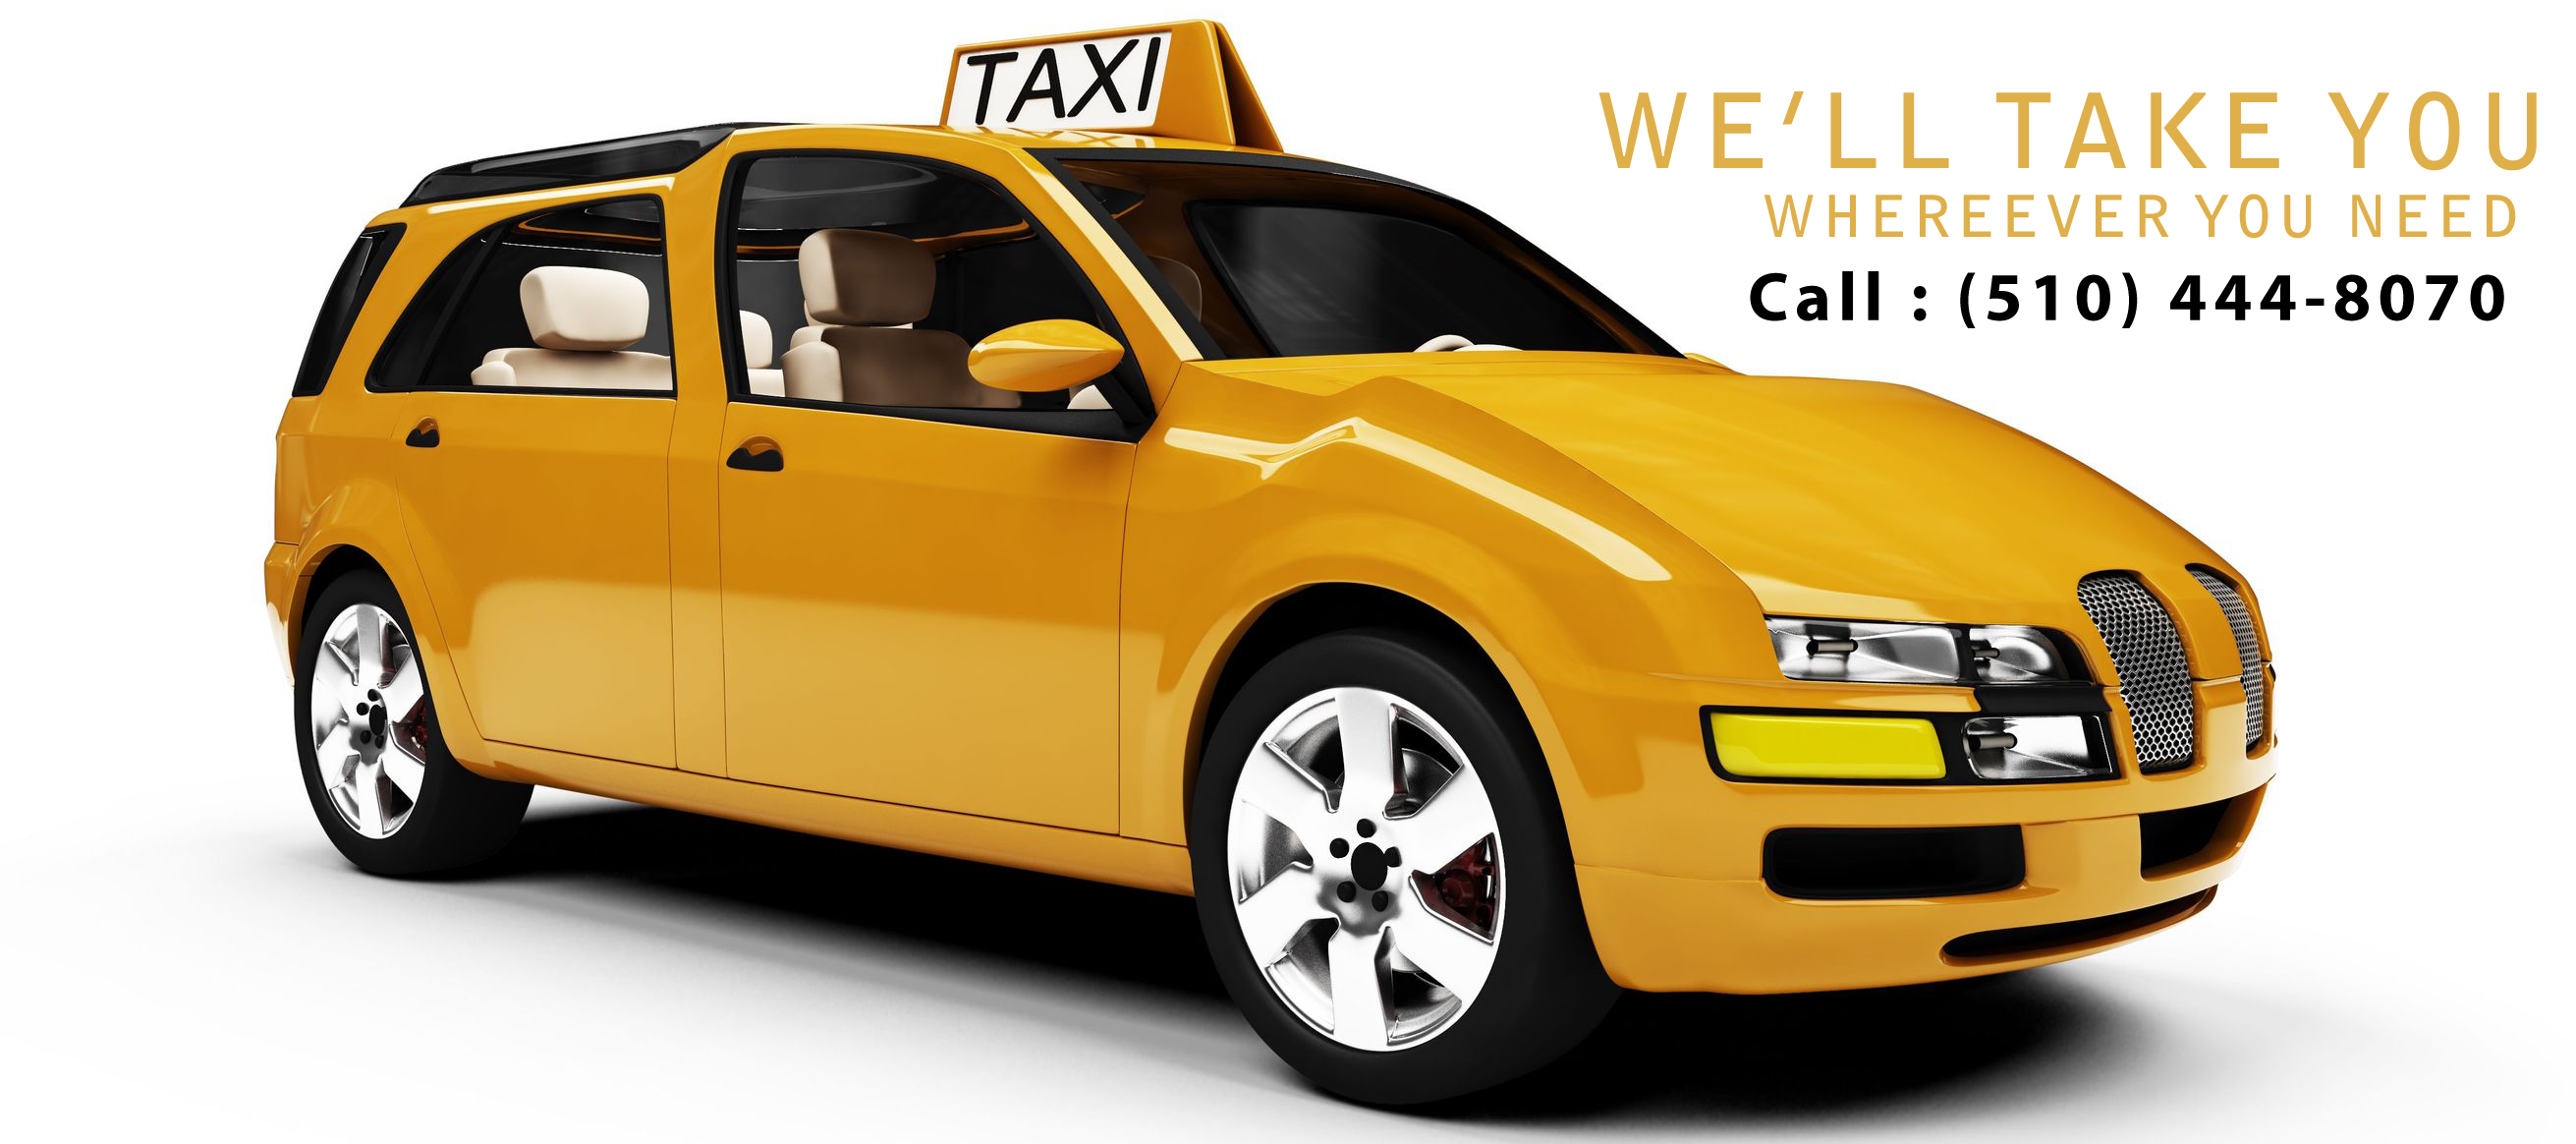 Bay porter Cab co. | Airport taxi cab service | Town car taxi ...